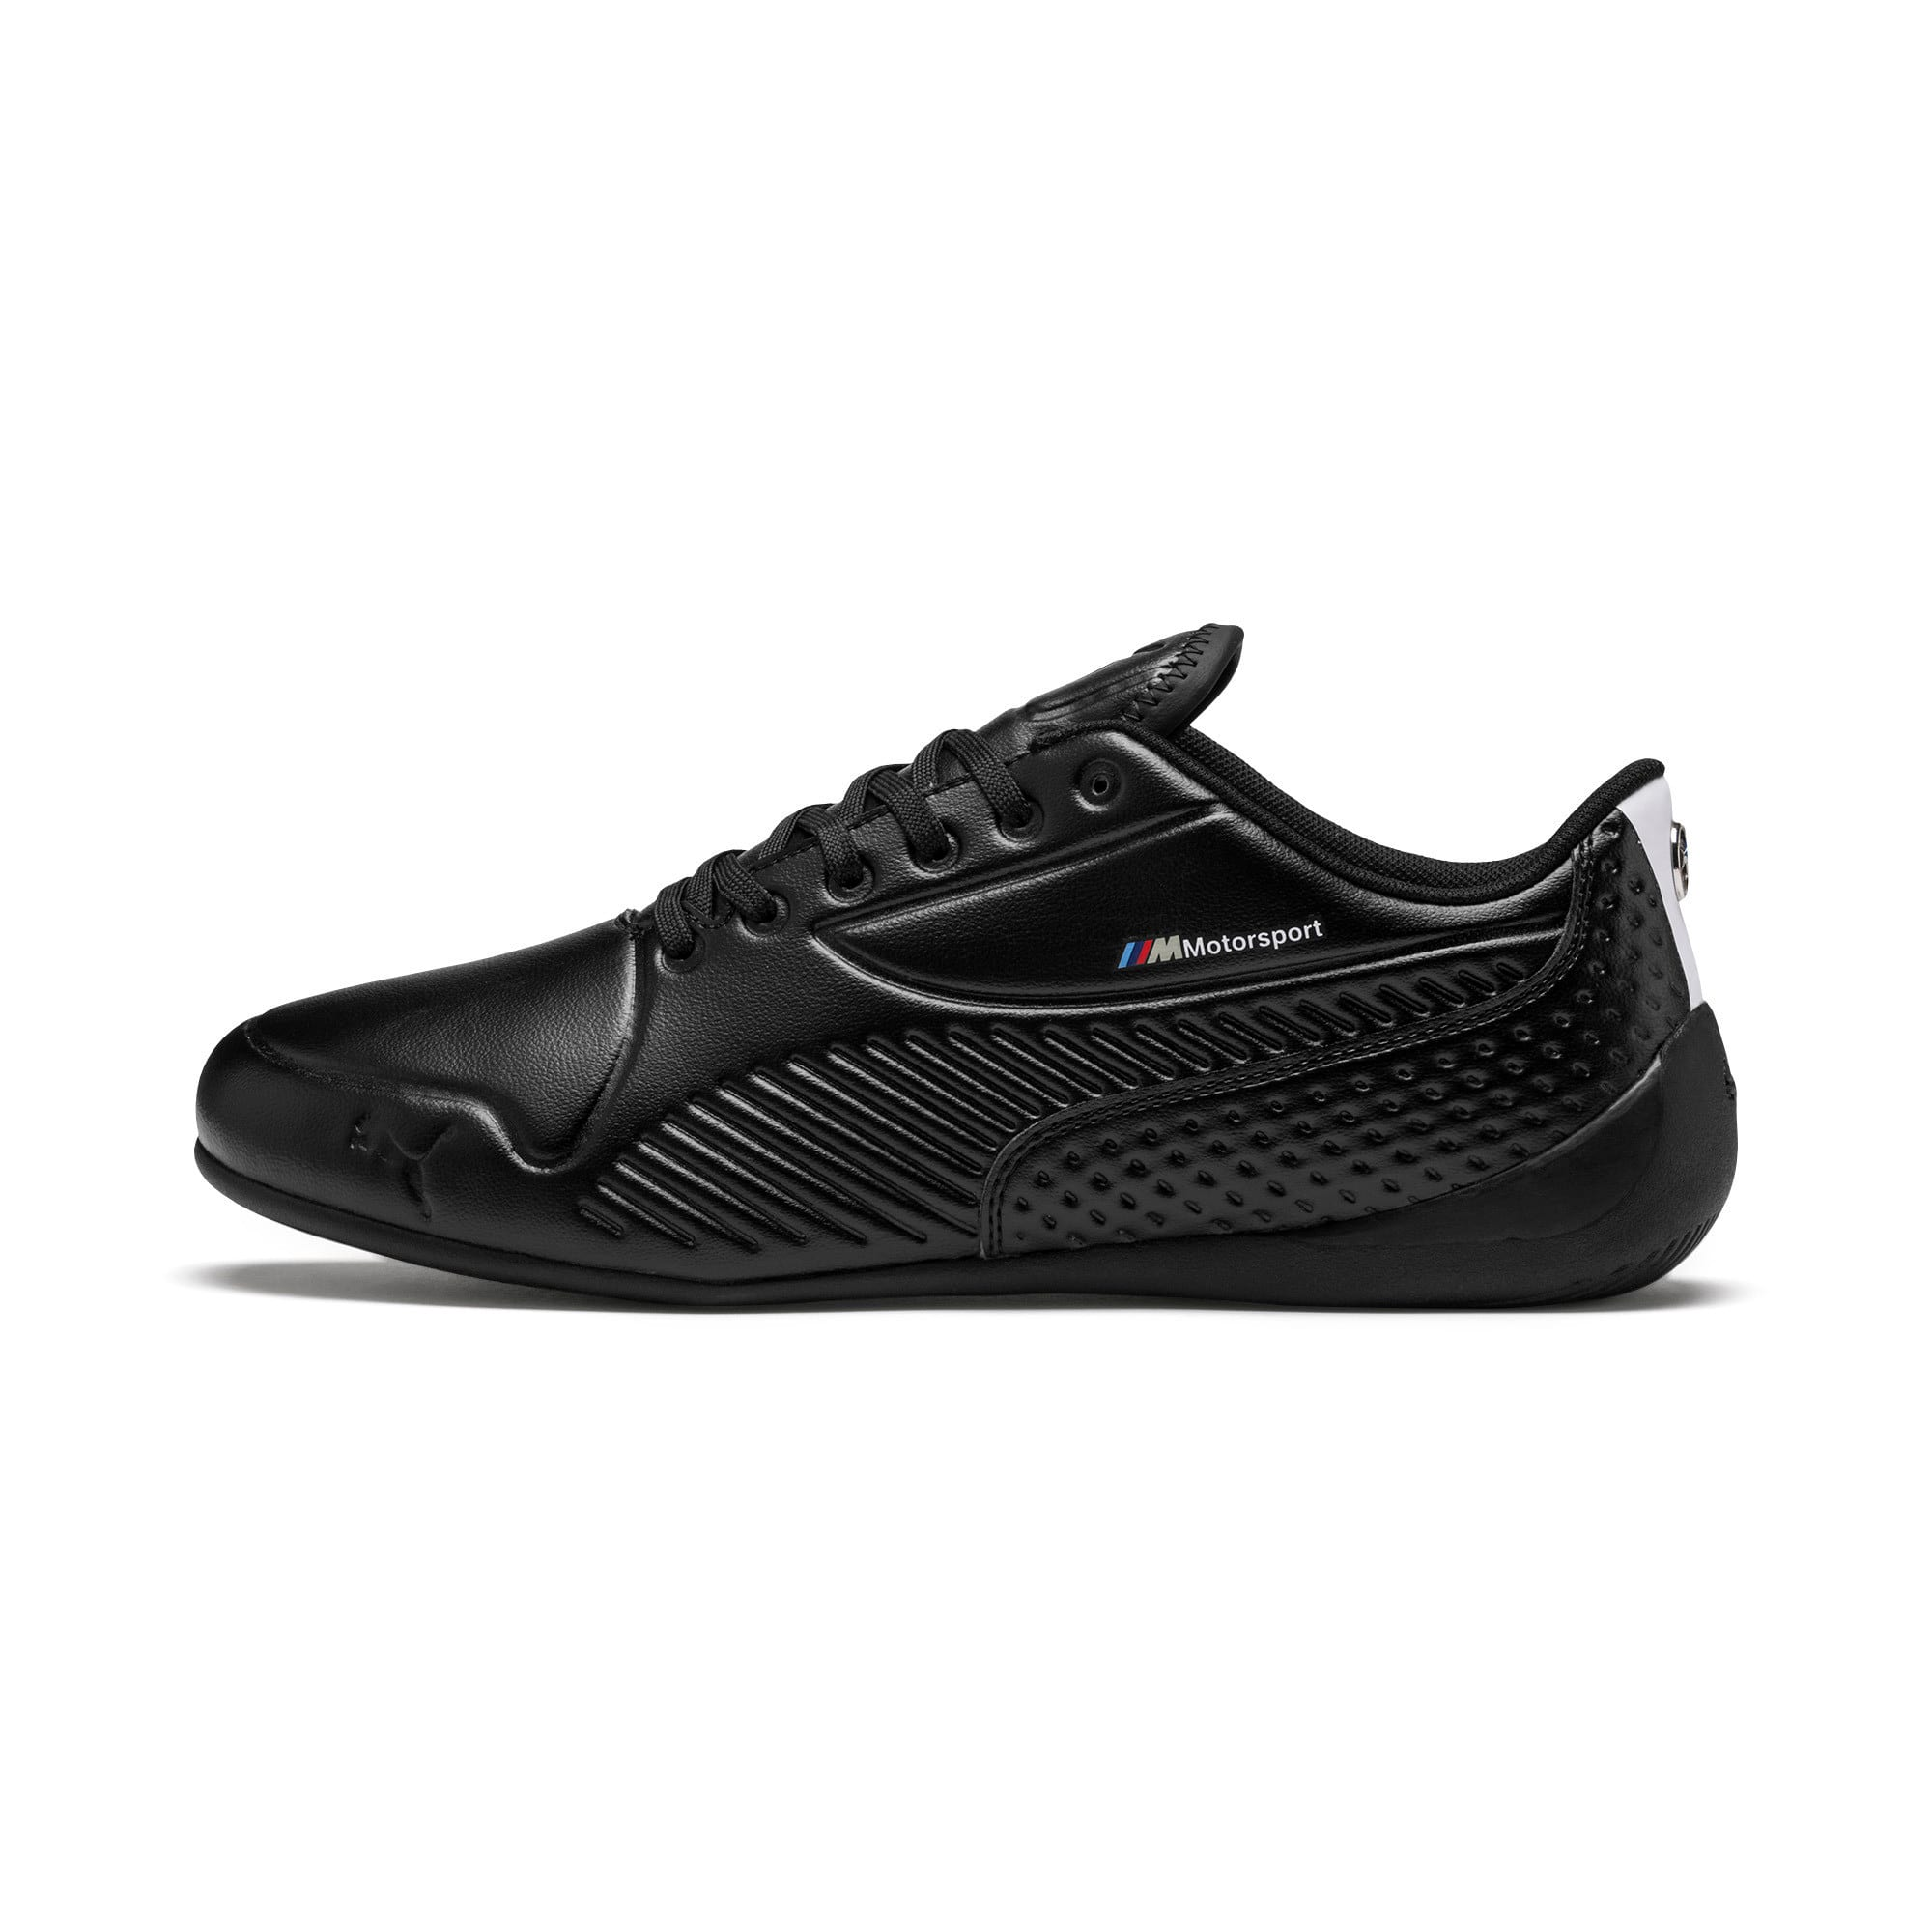 Thumbnail 1 of BMW MMS ドリフトキャット 7S ウルトラ スニーカー, Puma Black-Puma White, medium-JPN